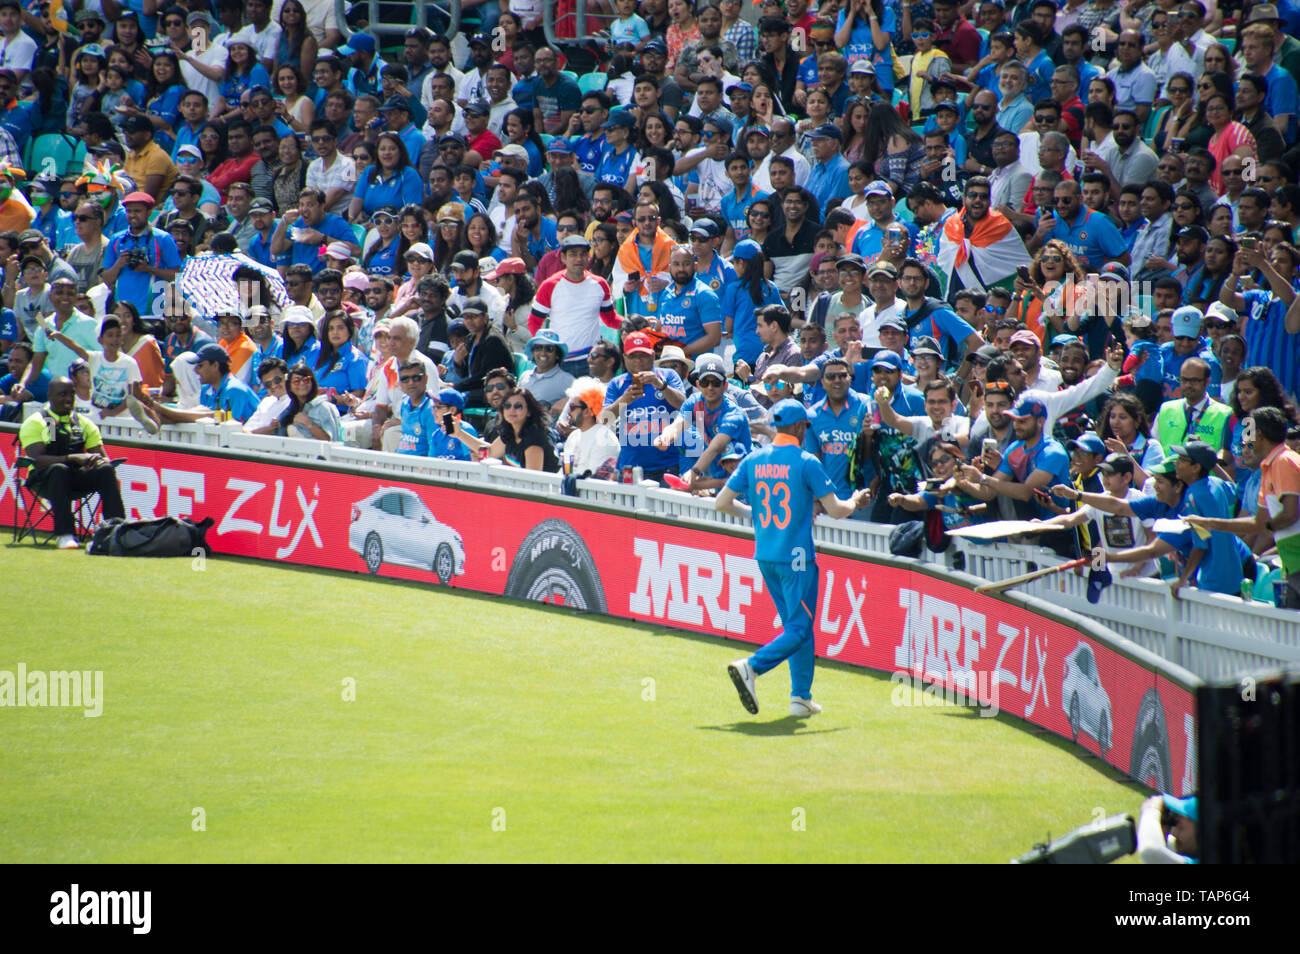 Indian cricket fans at ICC 2019 India vs NewZeland warm up match at the Kia Oval, London Stock Photo